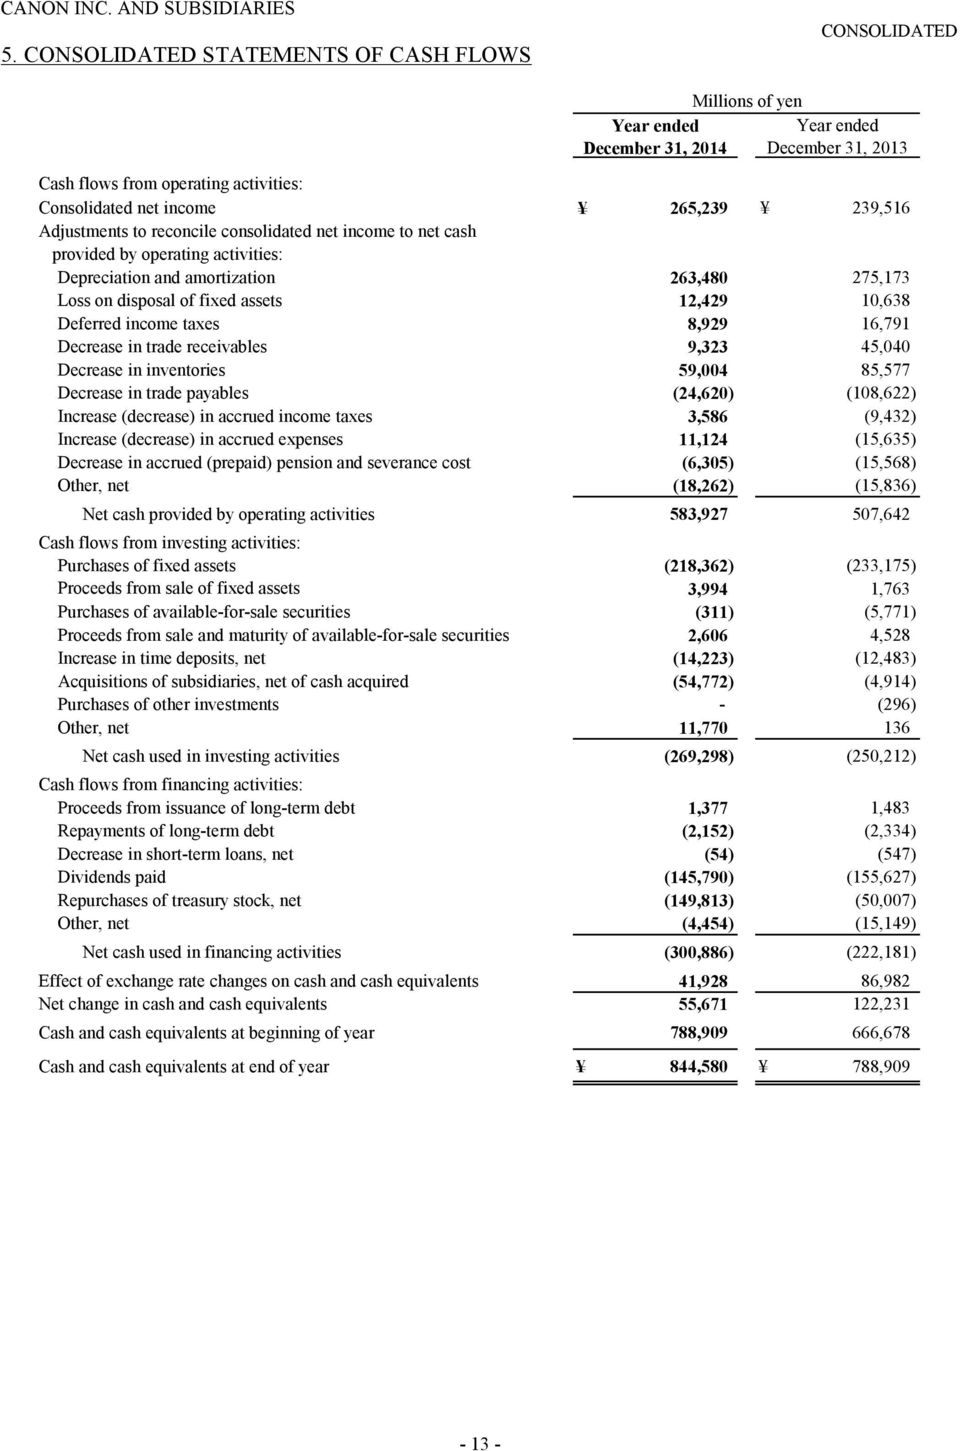 reconcile consolidated net income to net cash provided by operating activities: Depreciation and amortization 263,480 275,173 Loss on disposal of fixed assets 12,429 10,638 Deferred income taxes